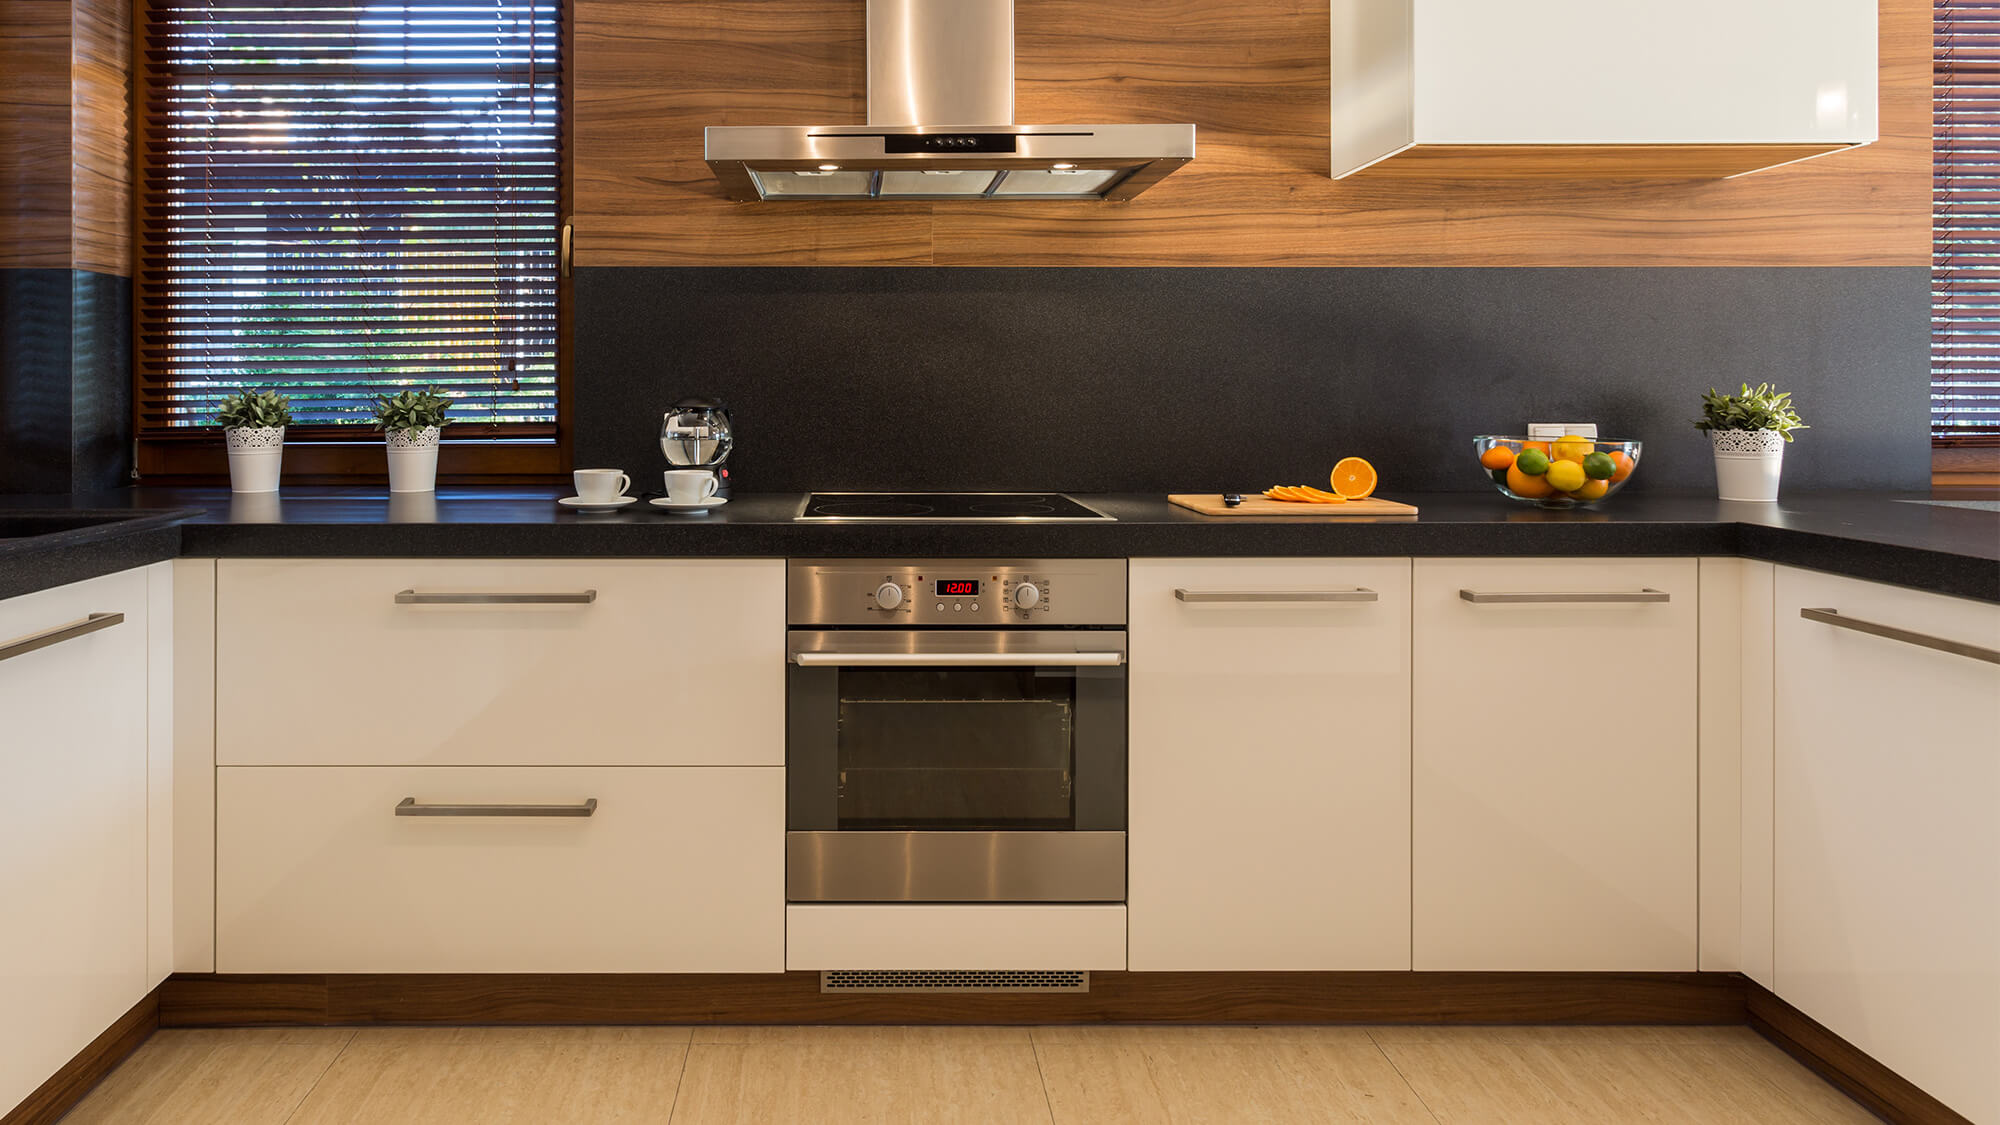 Built In Single Ovens Measurement Guides House Wiring To A Wall Oven